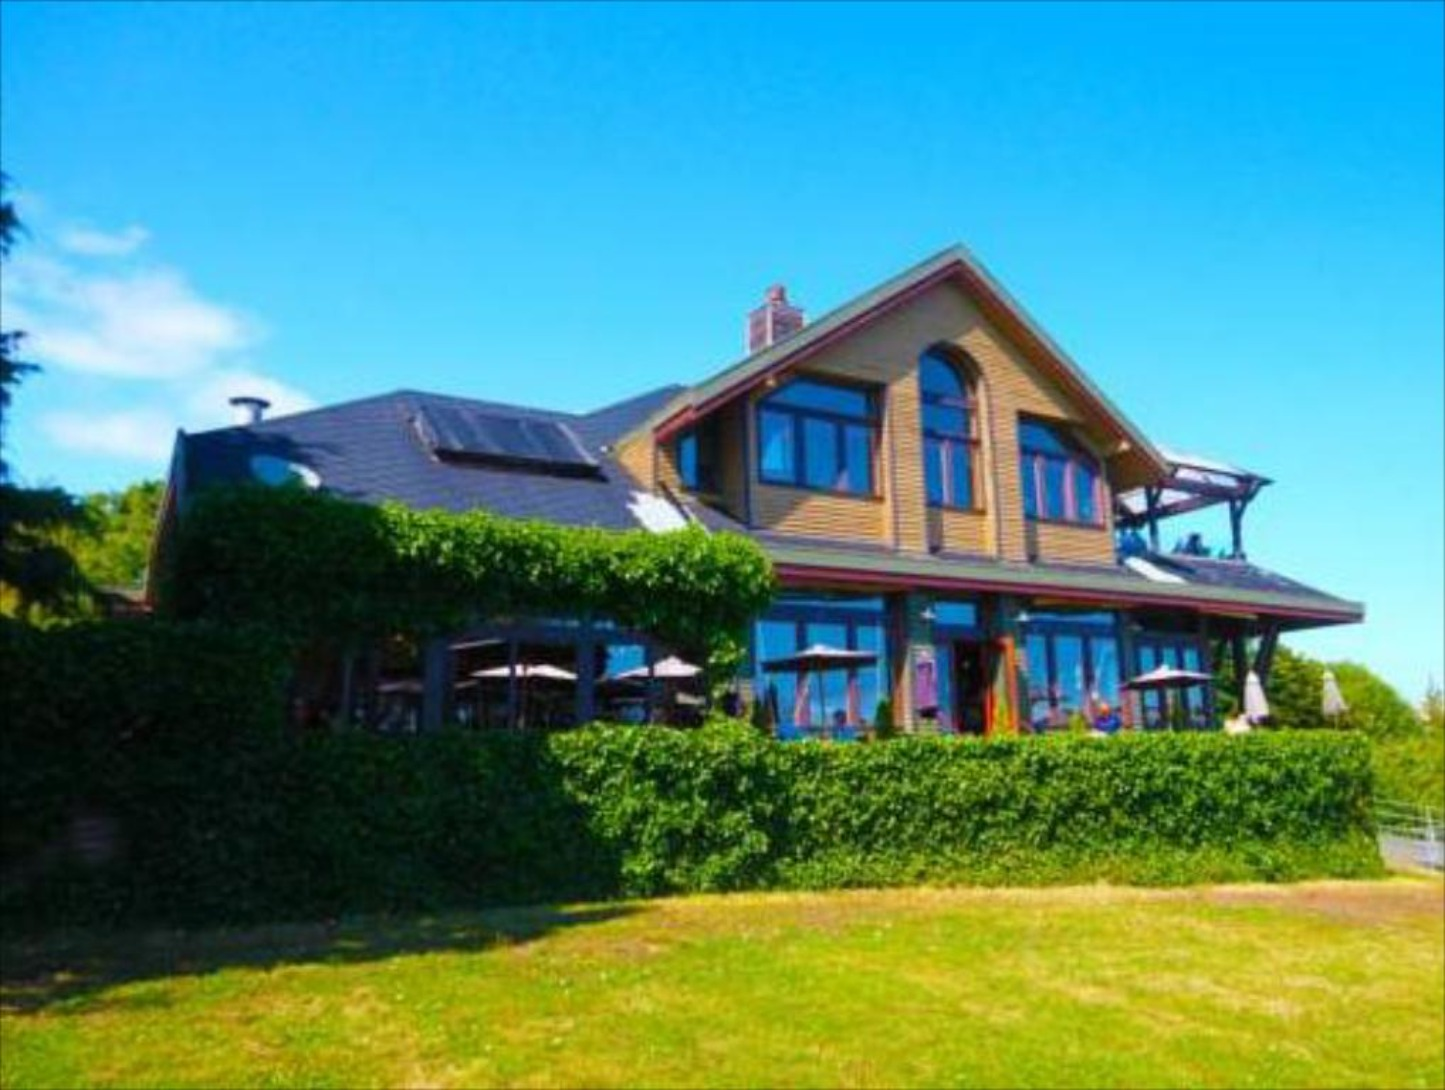 A house with trees in the background at Spinnakers Gastro Brewpub & GuestHouses.